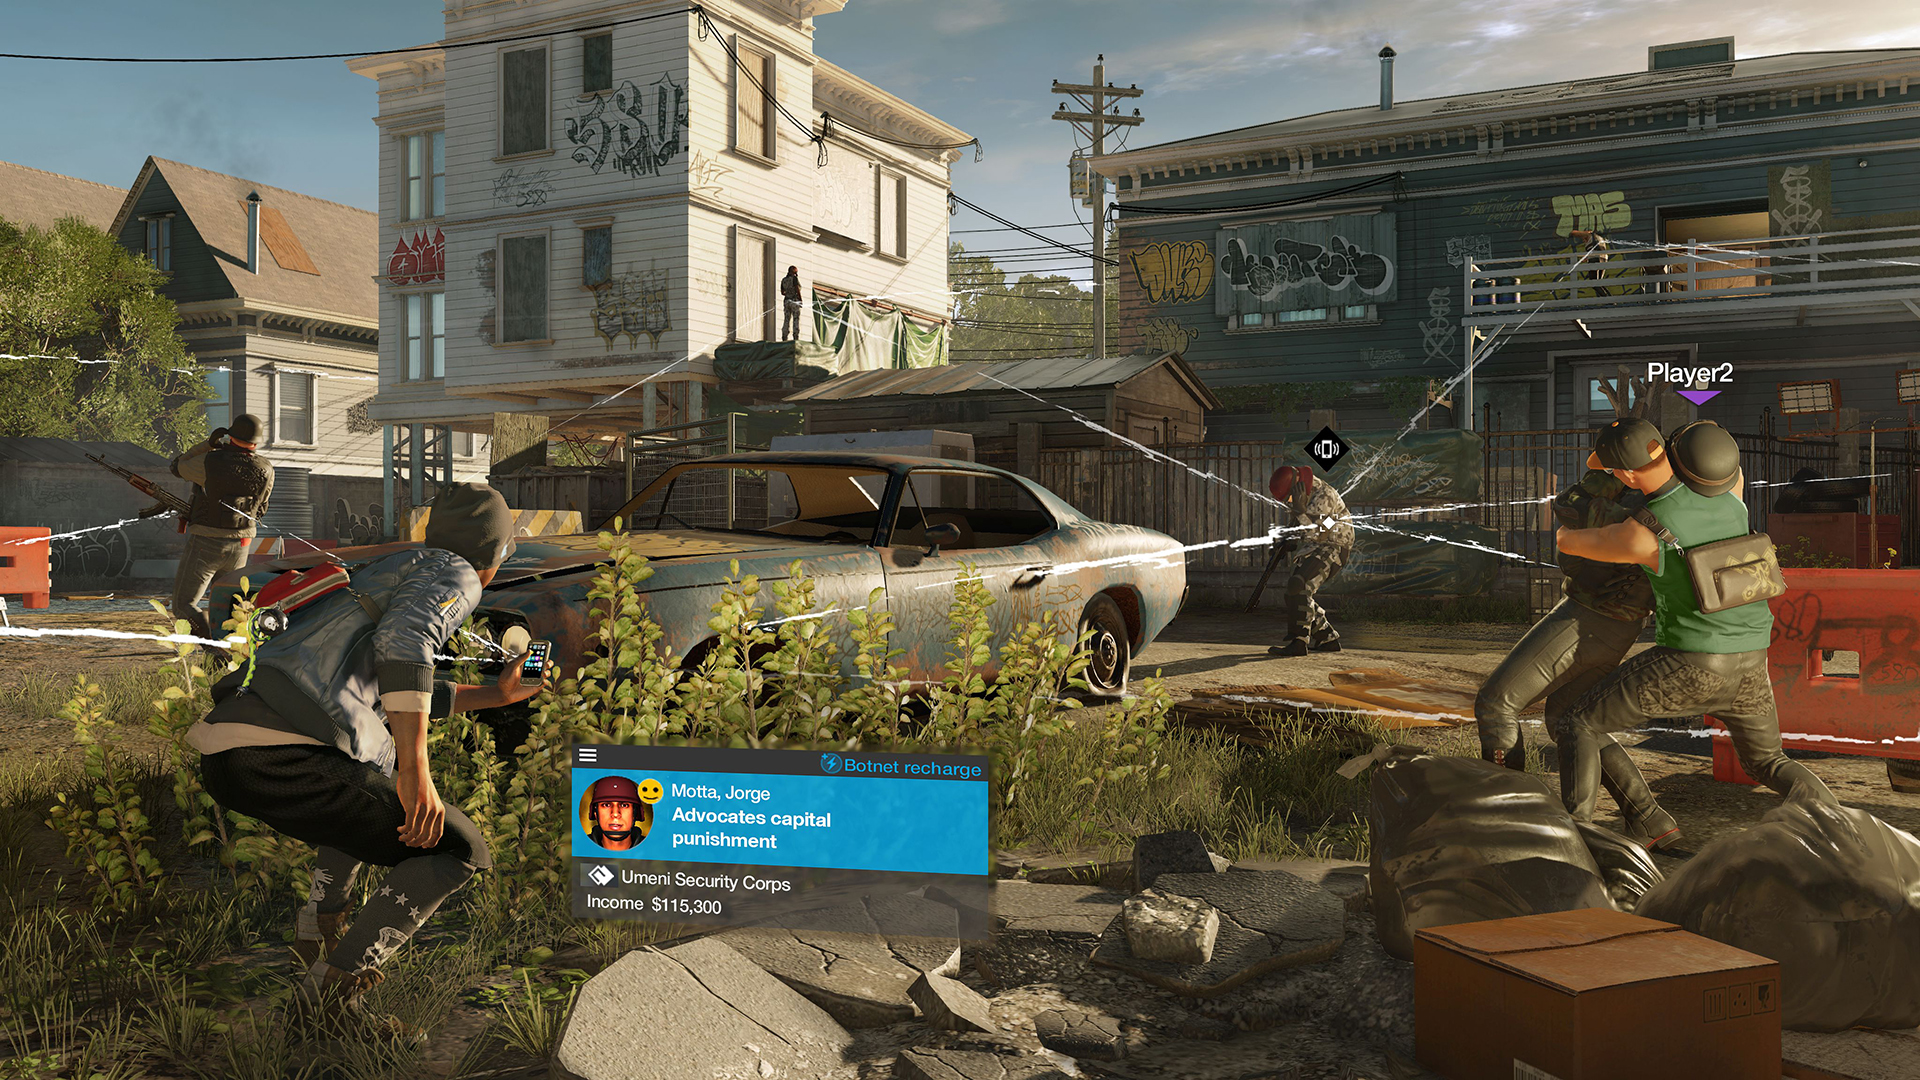 Galerie: Watch Dogs 2, For Honor, Halo Wars 2 129013